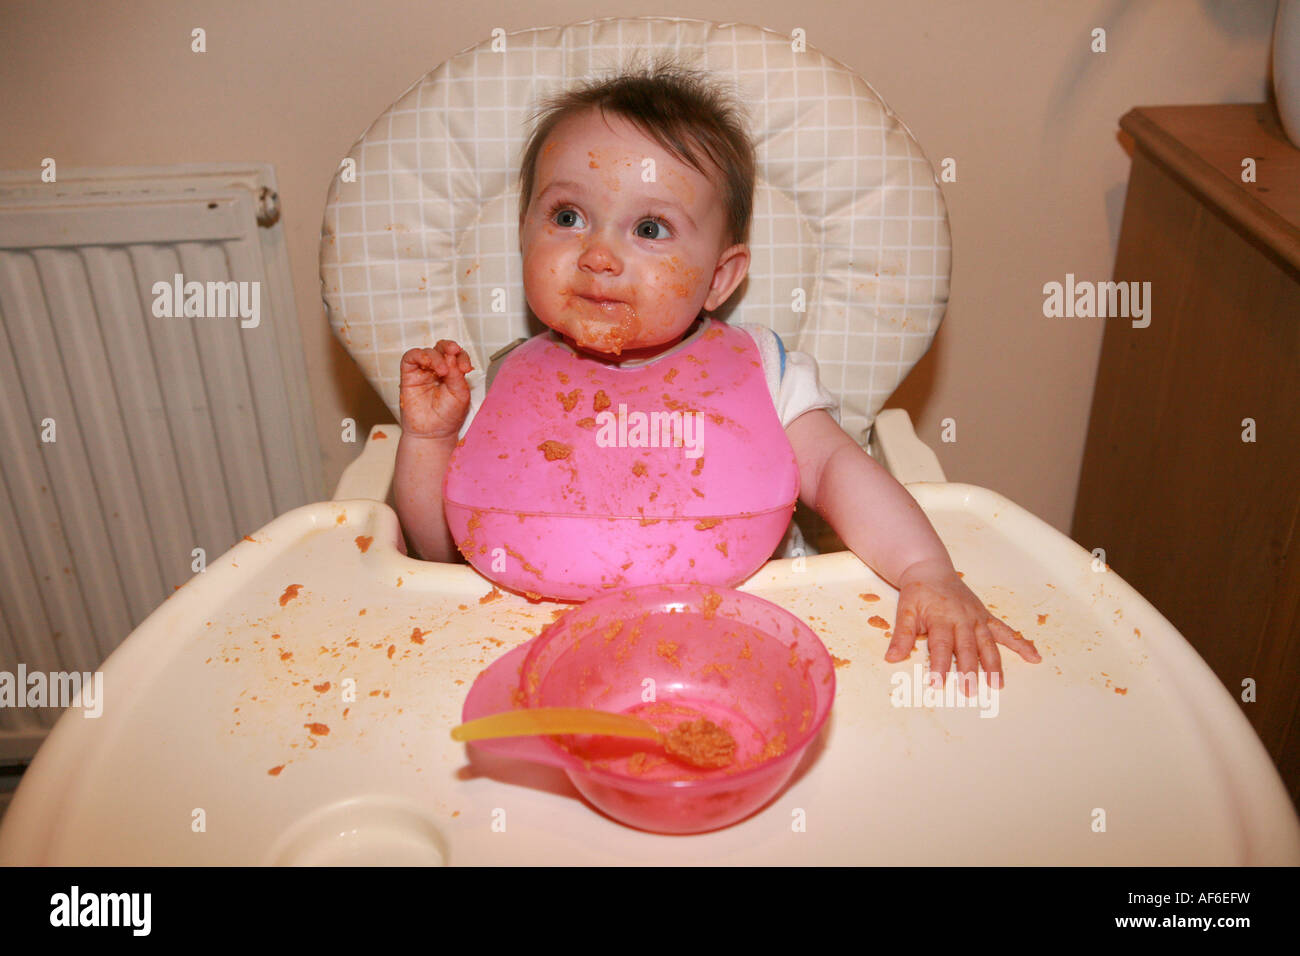 Baby Food Chair Old Covered Well Stock Photos And Old Covered Well Stock